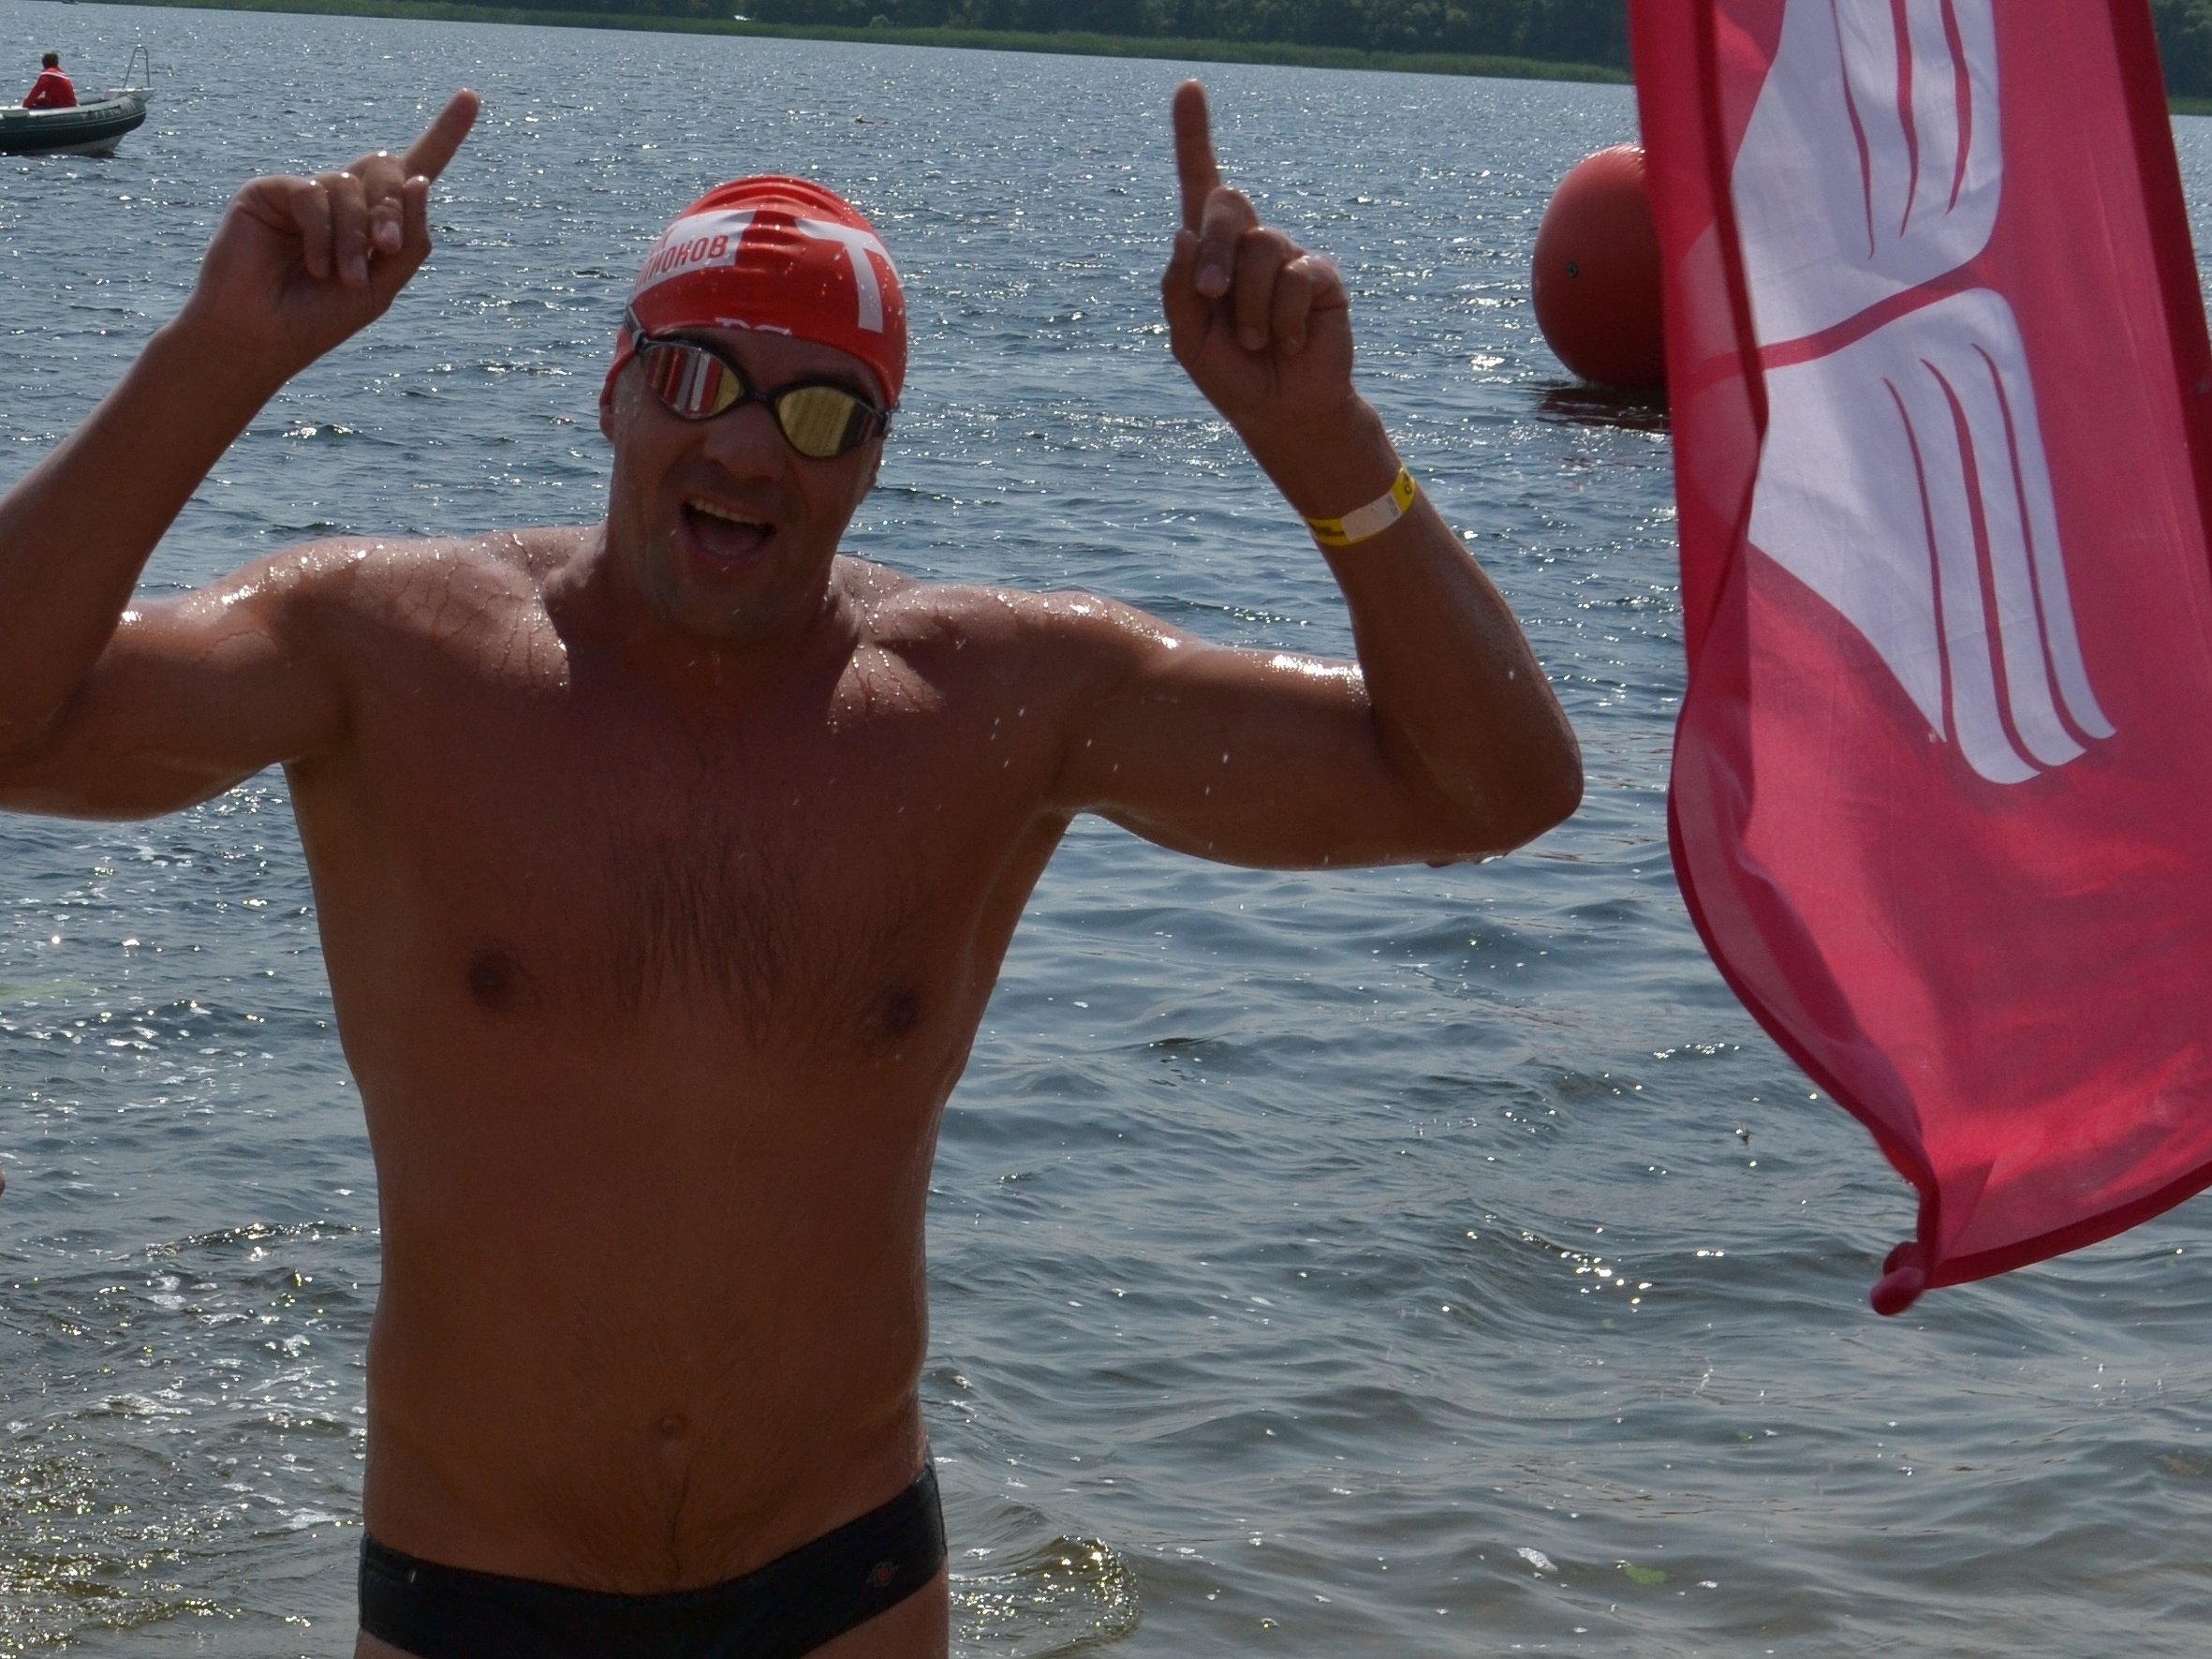 Aleksandr Rudakov at the finish